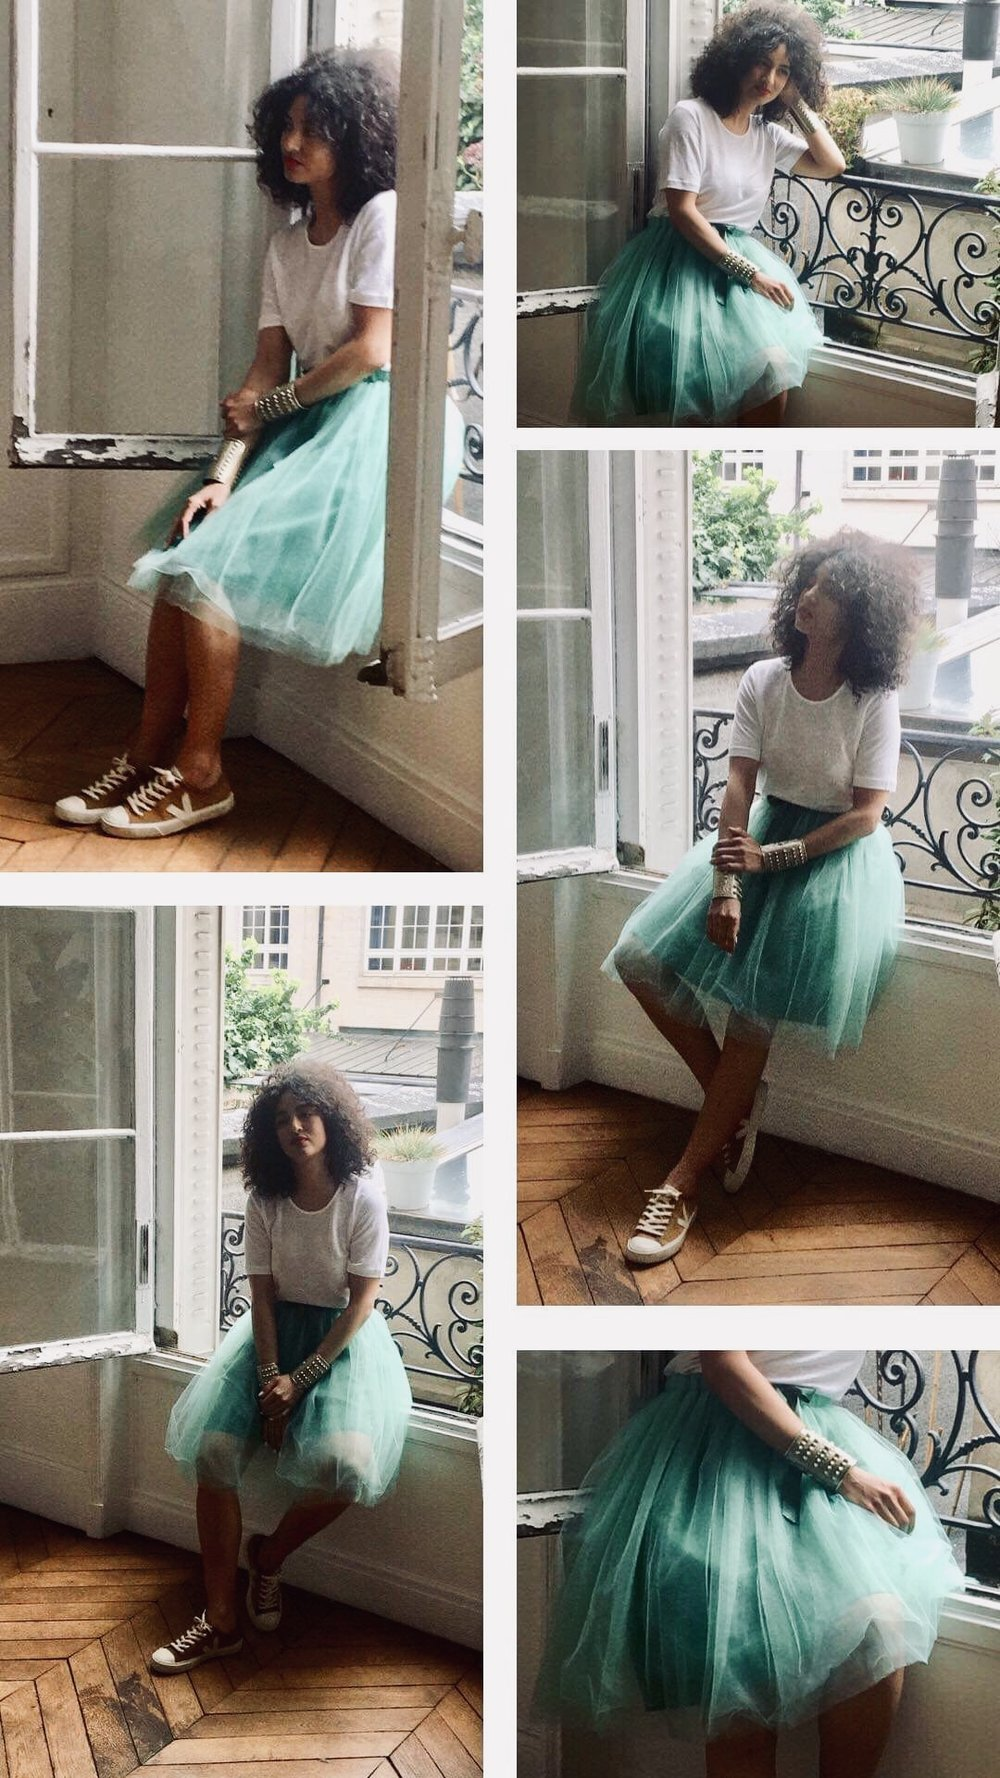 Backstage Shooting Collection - Muse Tutu : Virginie DarbonPhotographe : Amandine Galice